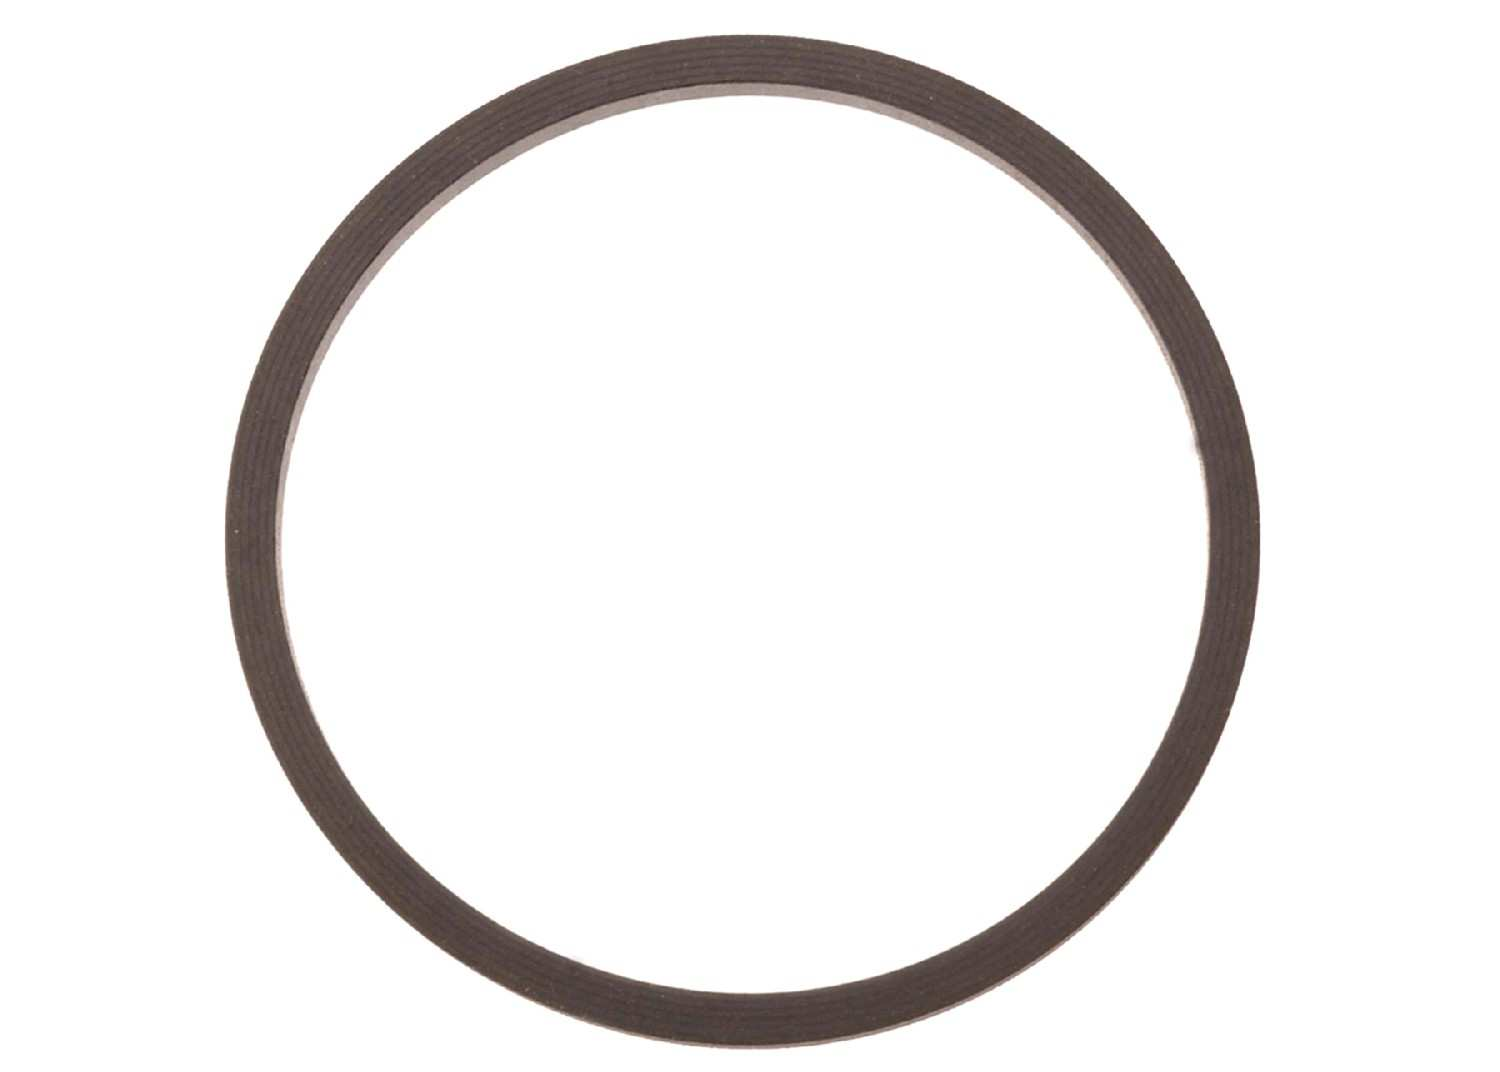 ACDELCO OE SERVICE - Engine Oil Cooler Adapter Seal (O Ring) - DCB 12480733